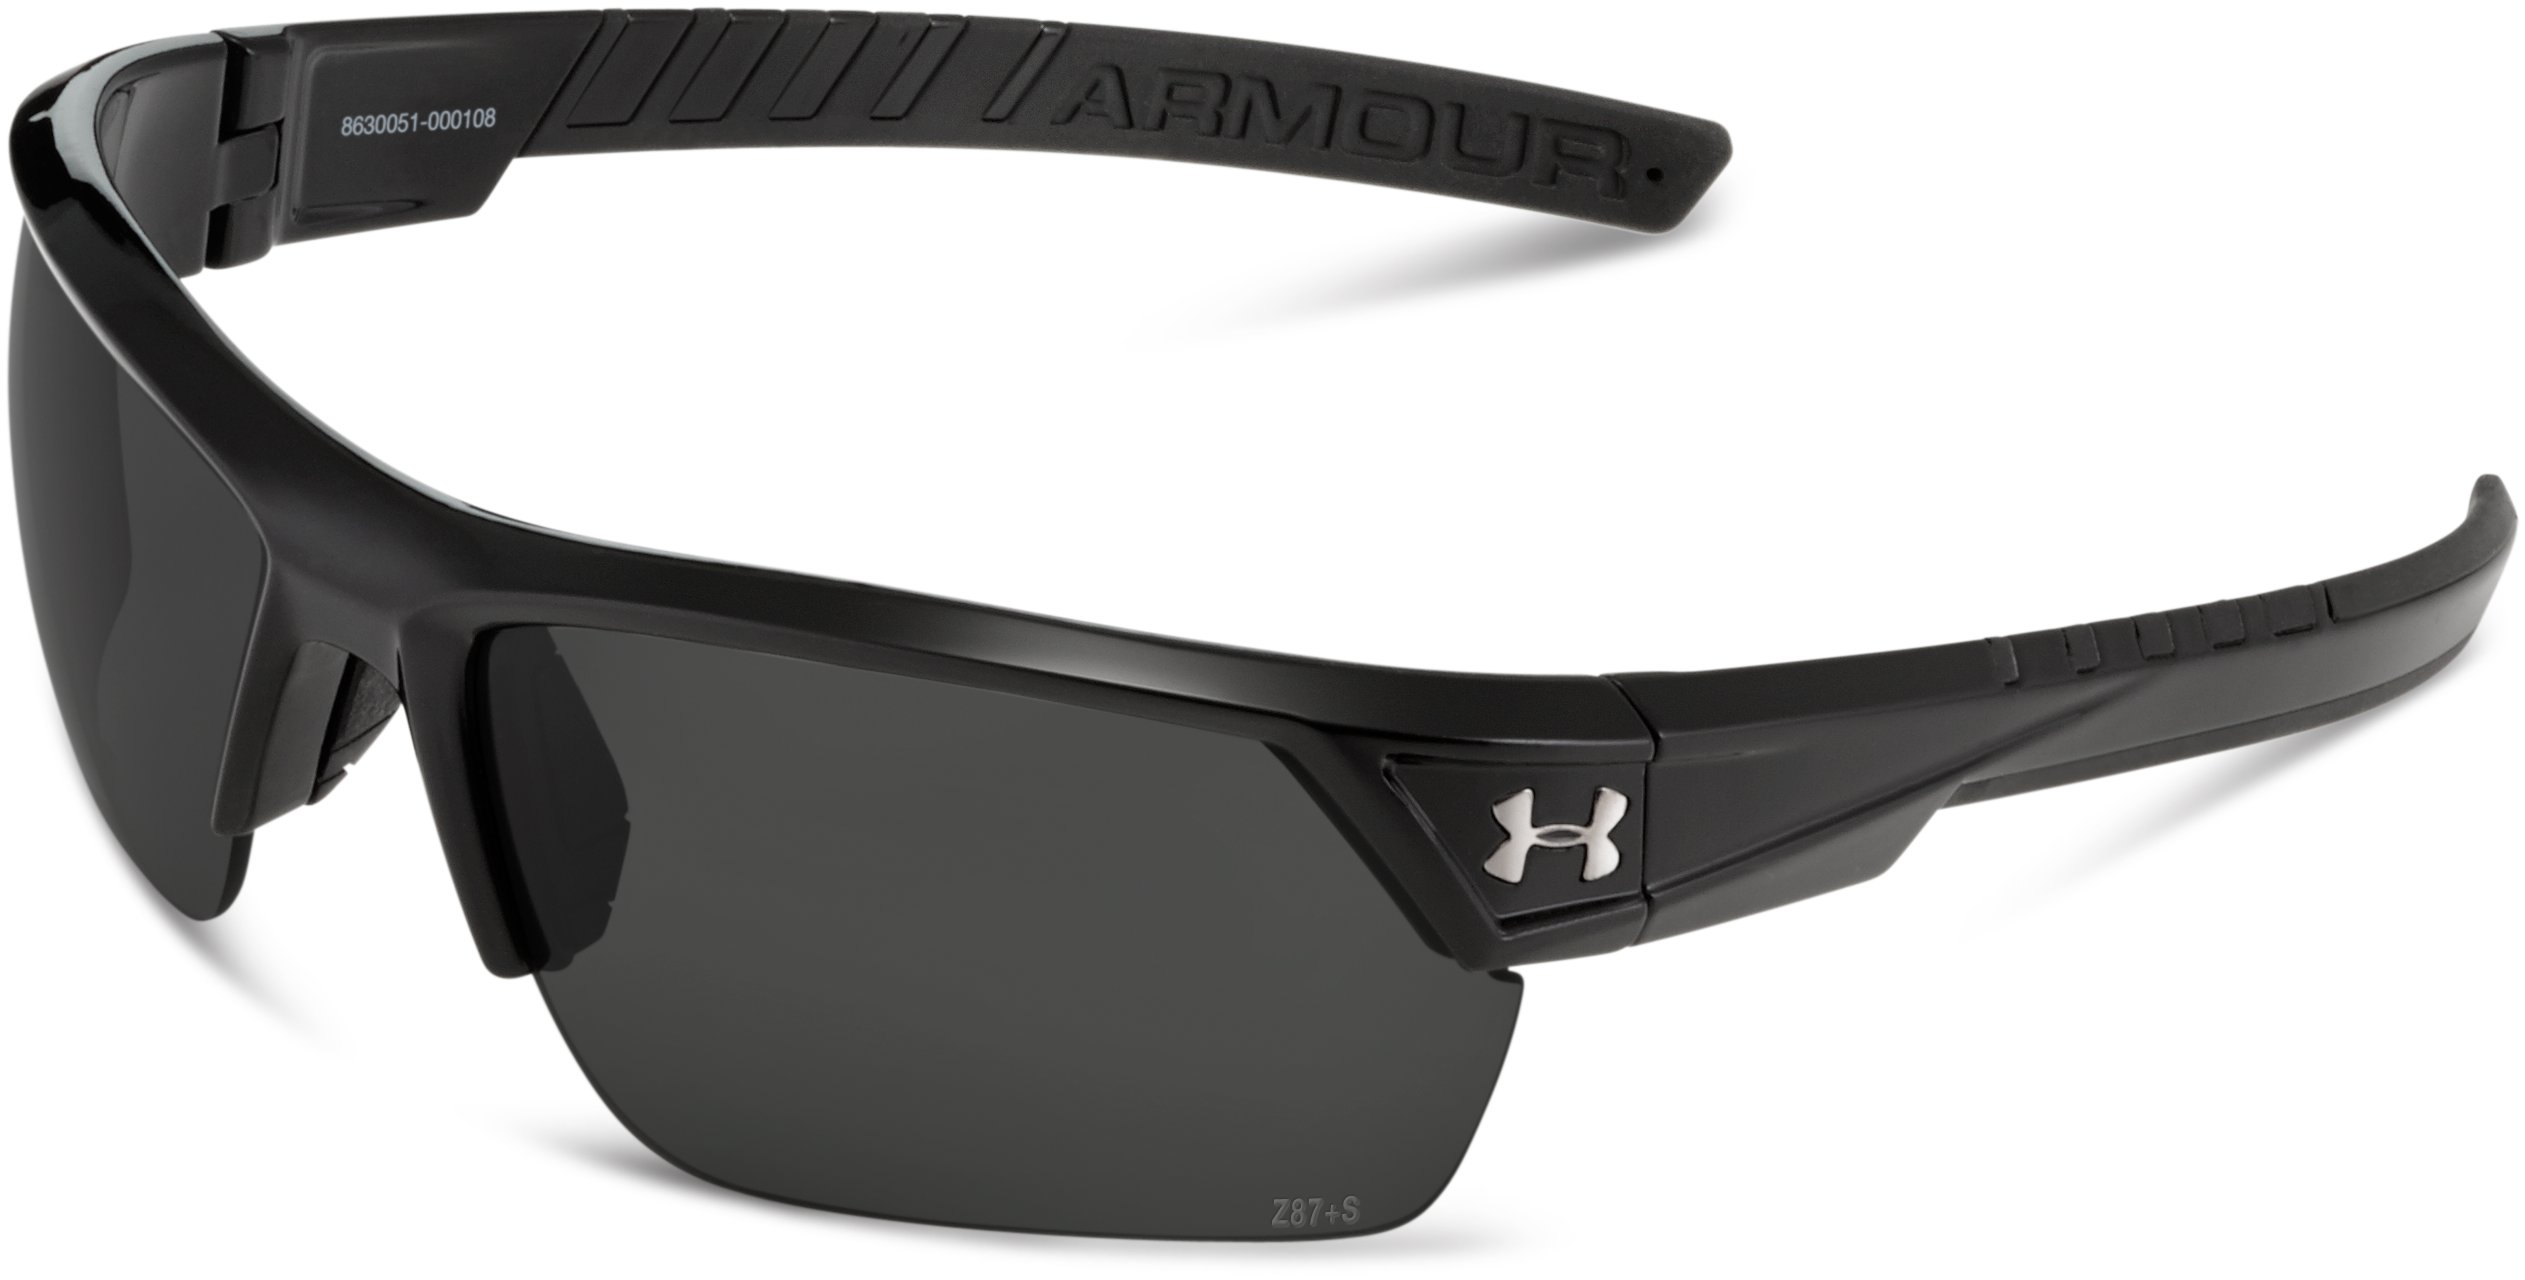 UA Igniter 2.0 Storm Polarized Sunglasses, Satin Black